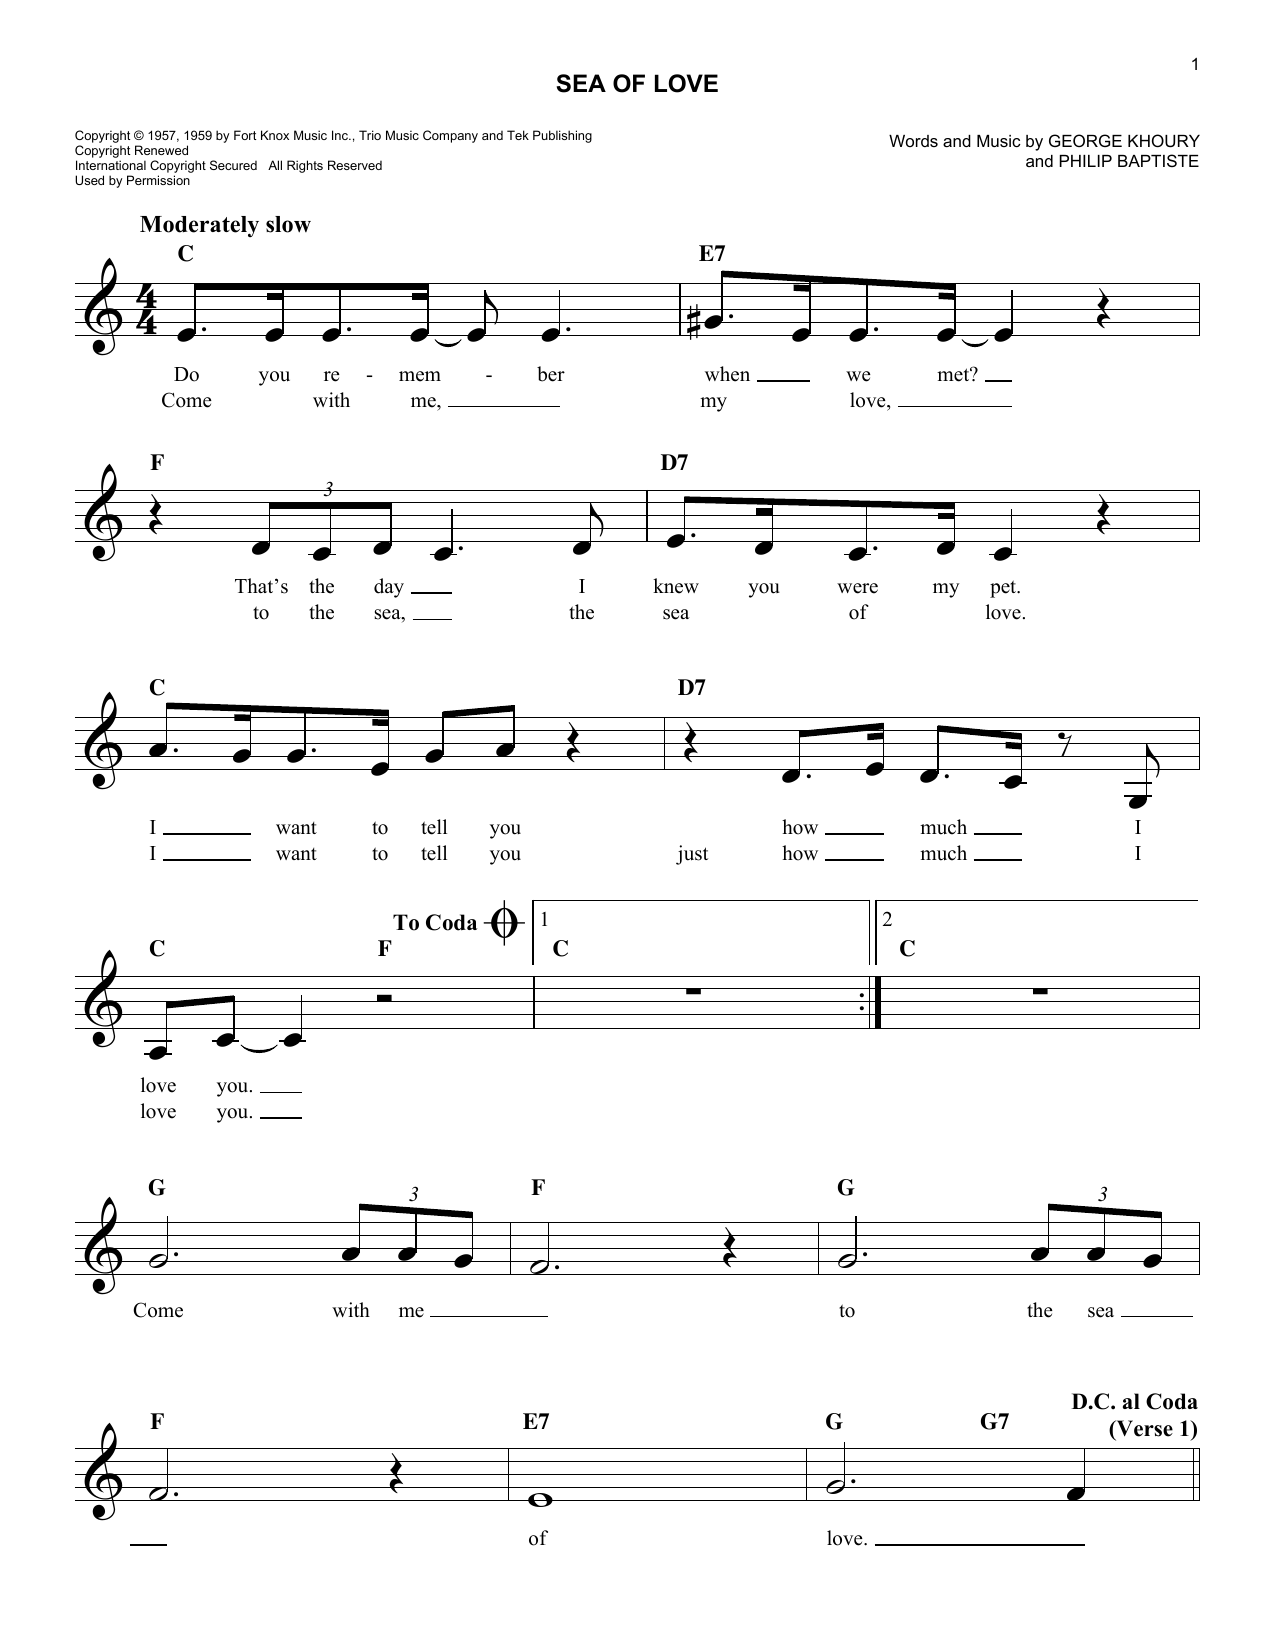 Phil Baptiste Sea Of Love sheet music notes and chords. Download Printable PDF.